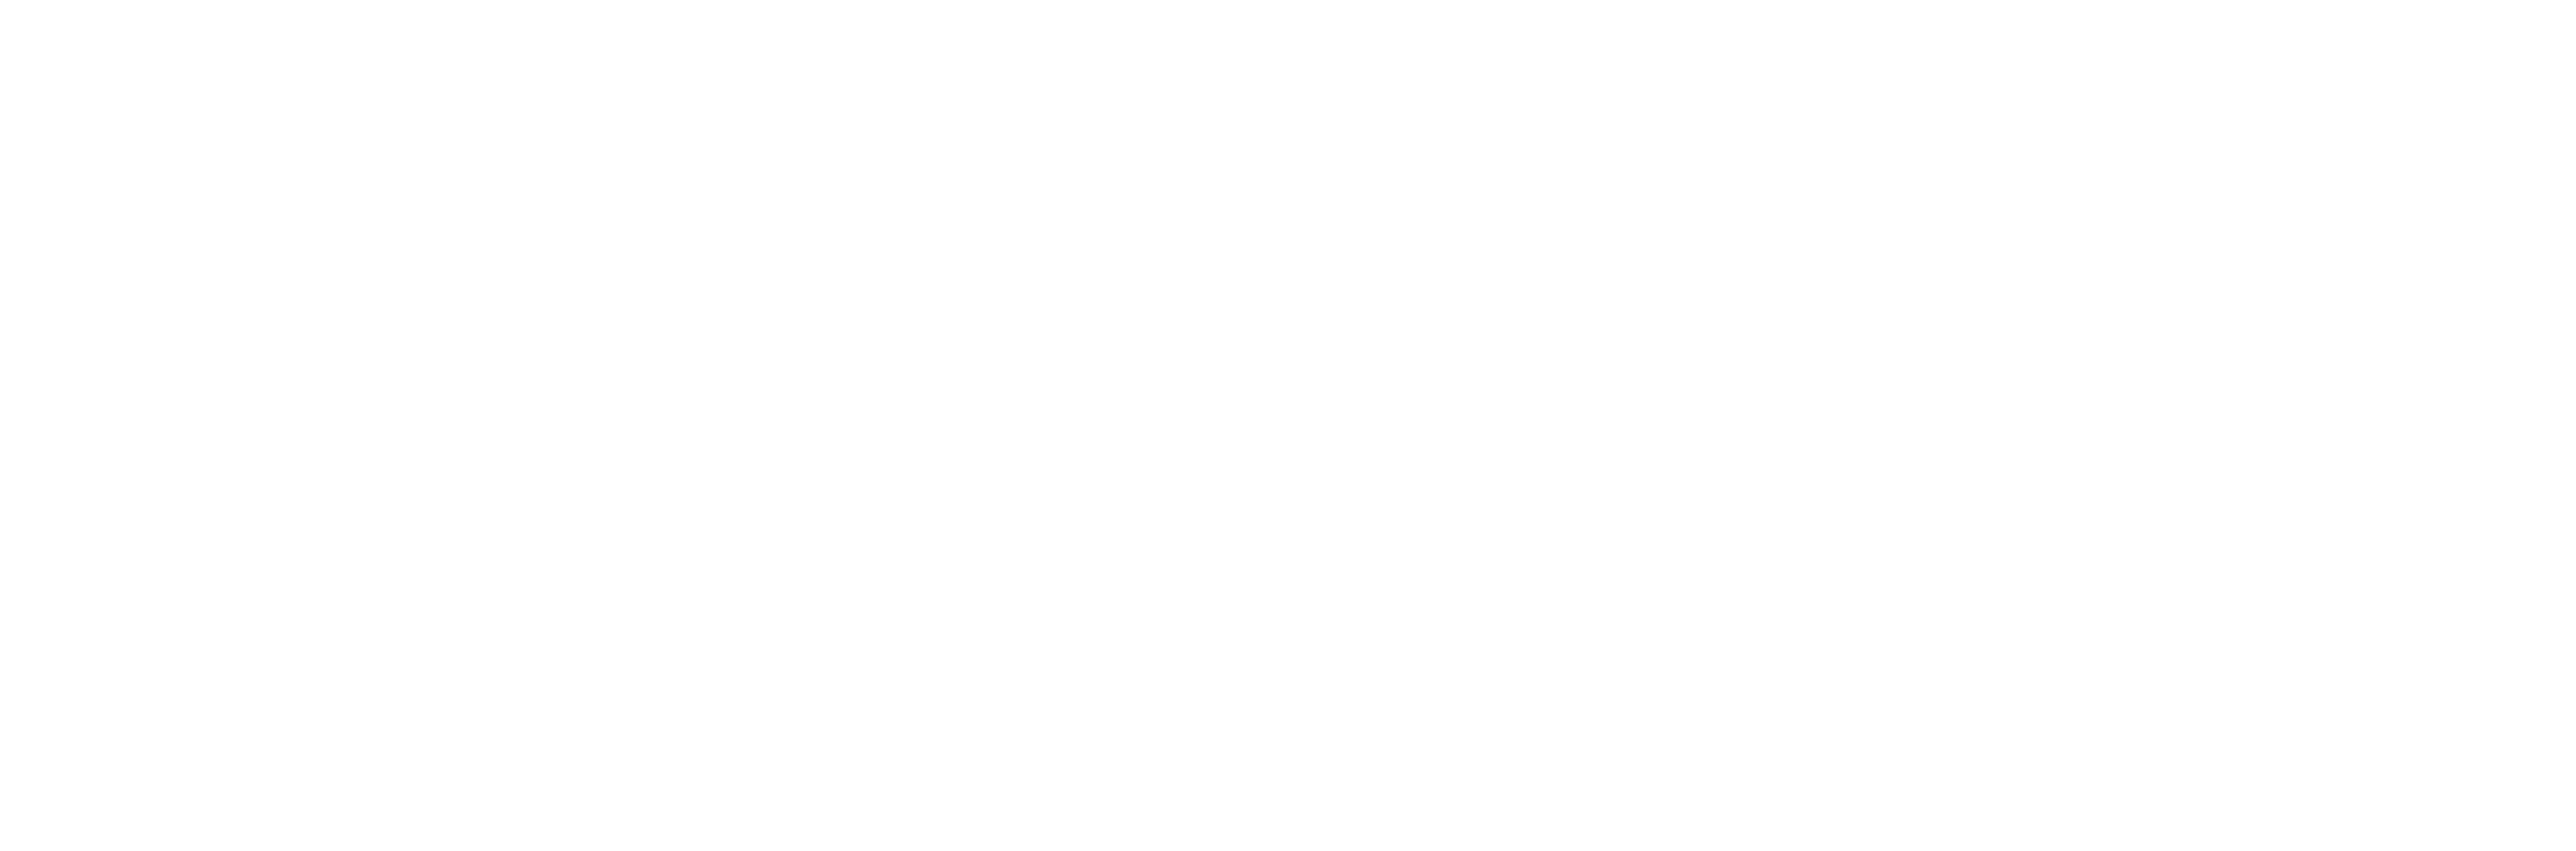 The Pop Test & Palisades Therapeutics Companies